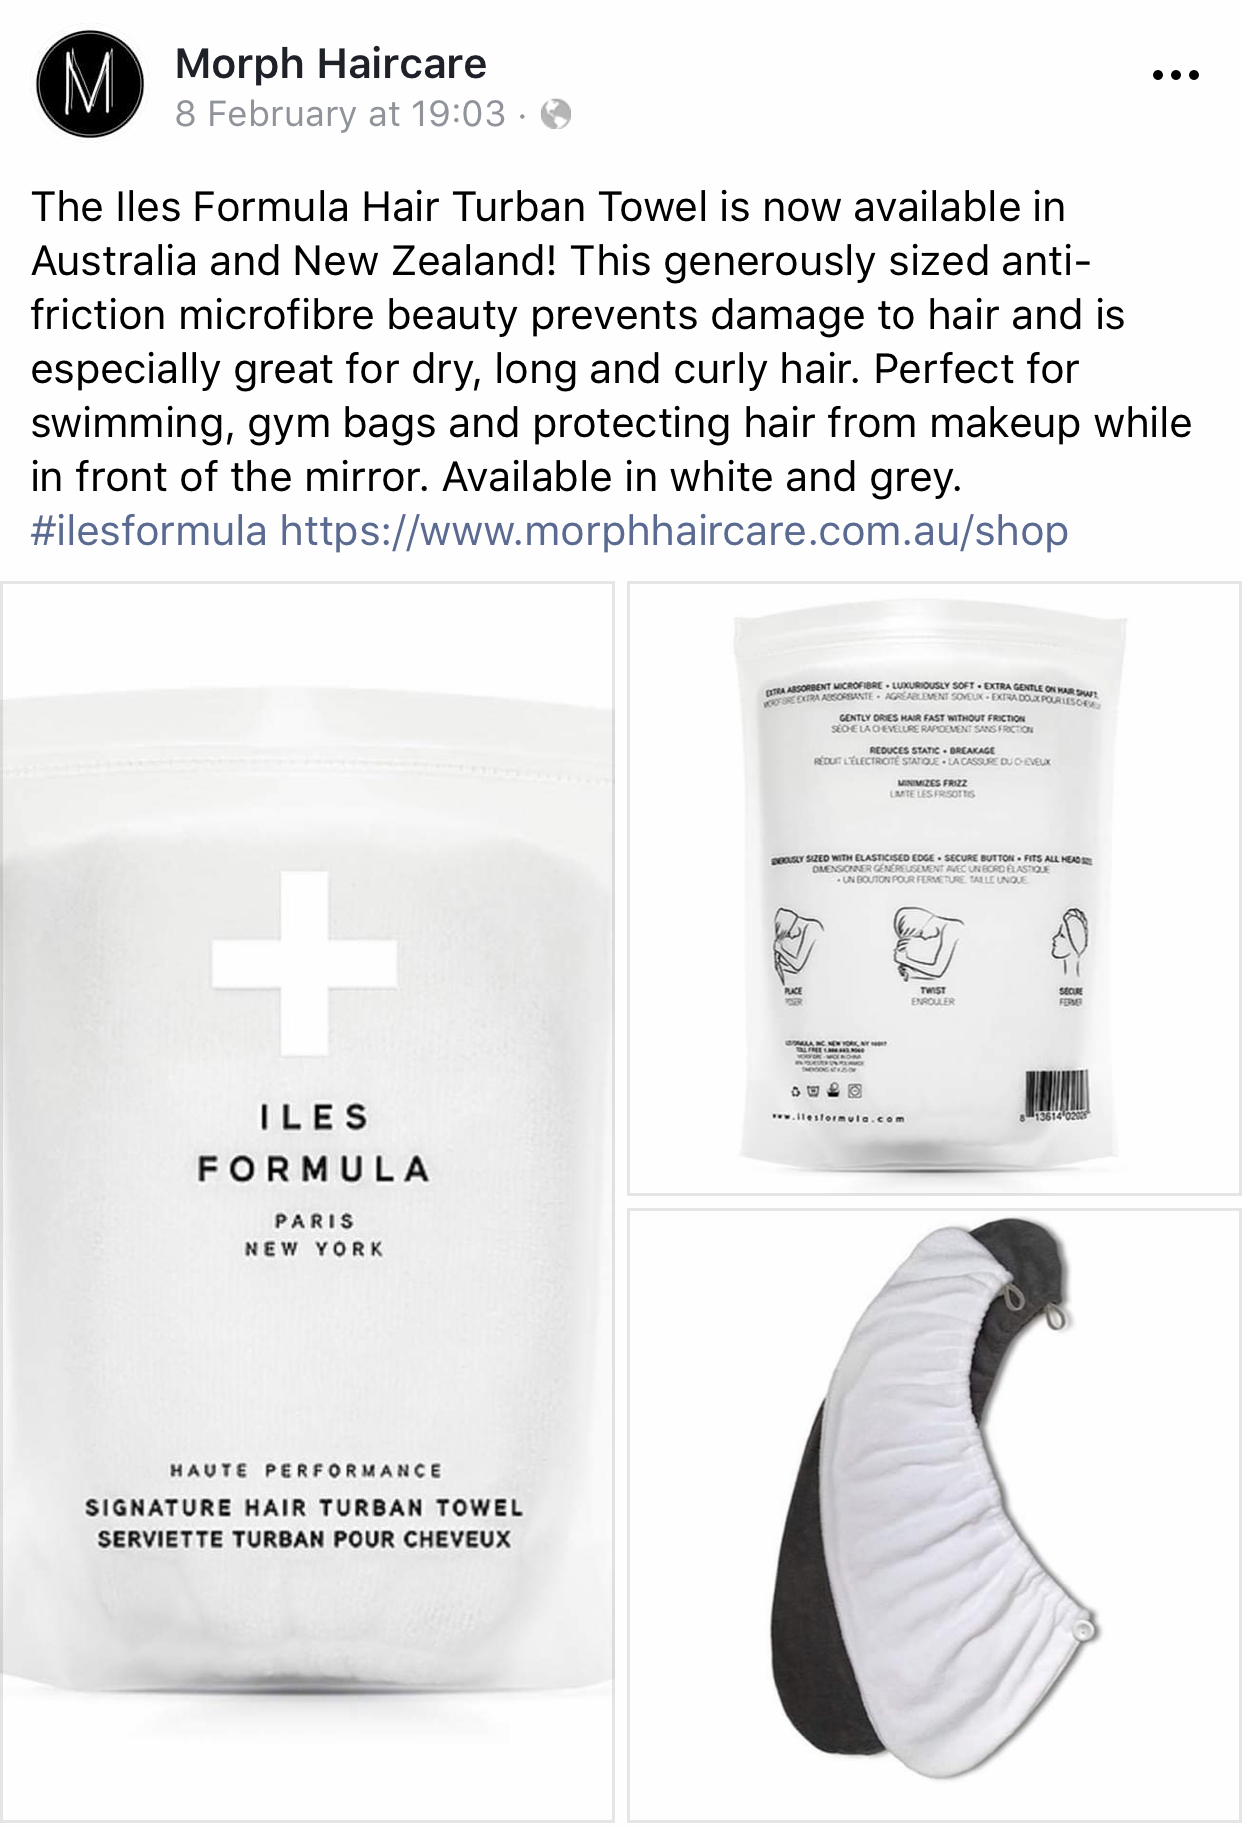 Facebook Ad's for Iles Formula